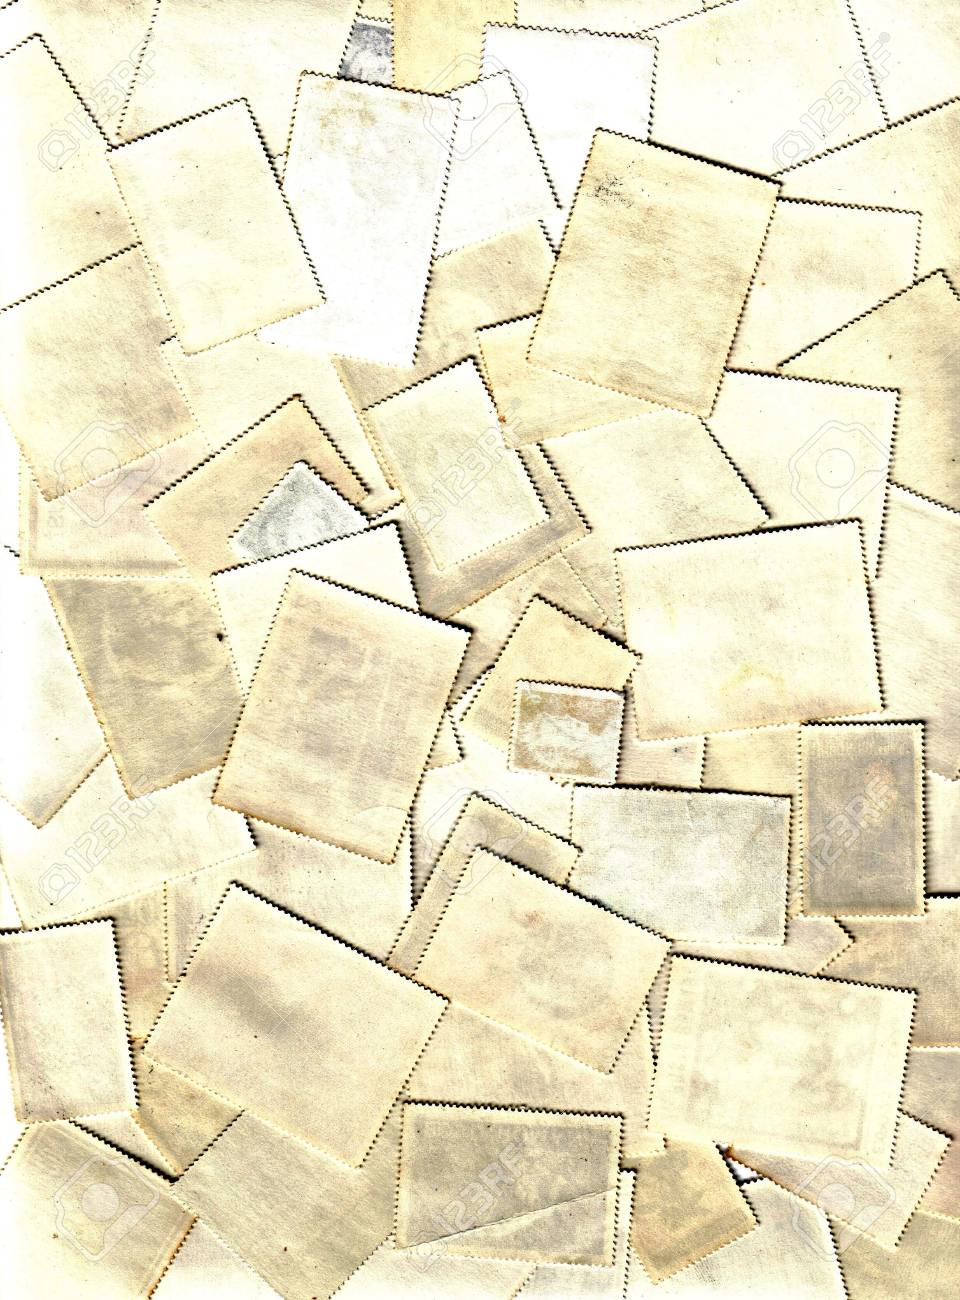 collection of blank post stamps Stock Photo - 5915710